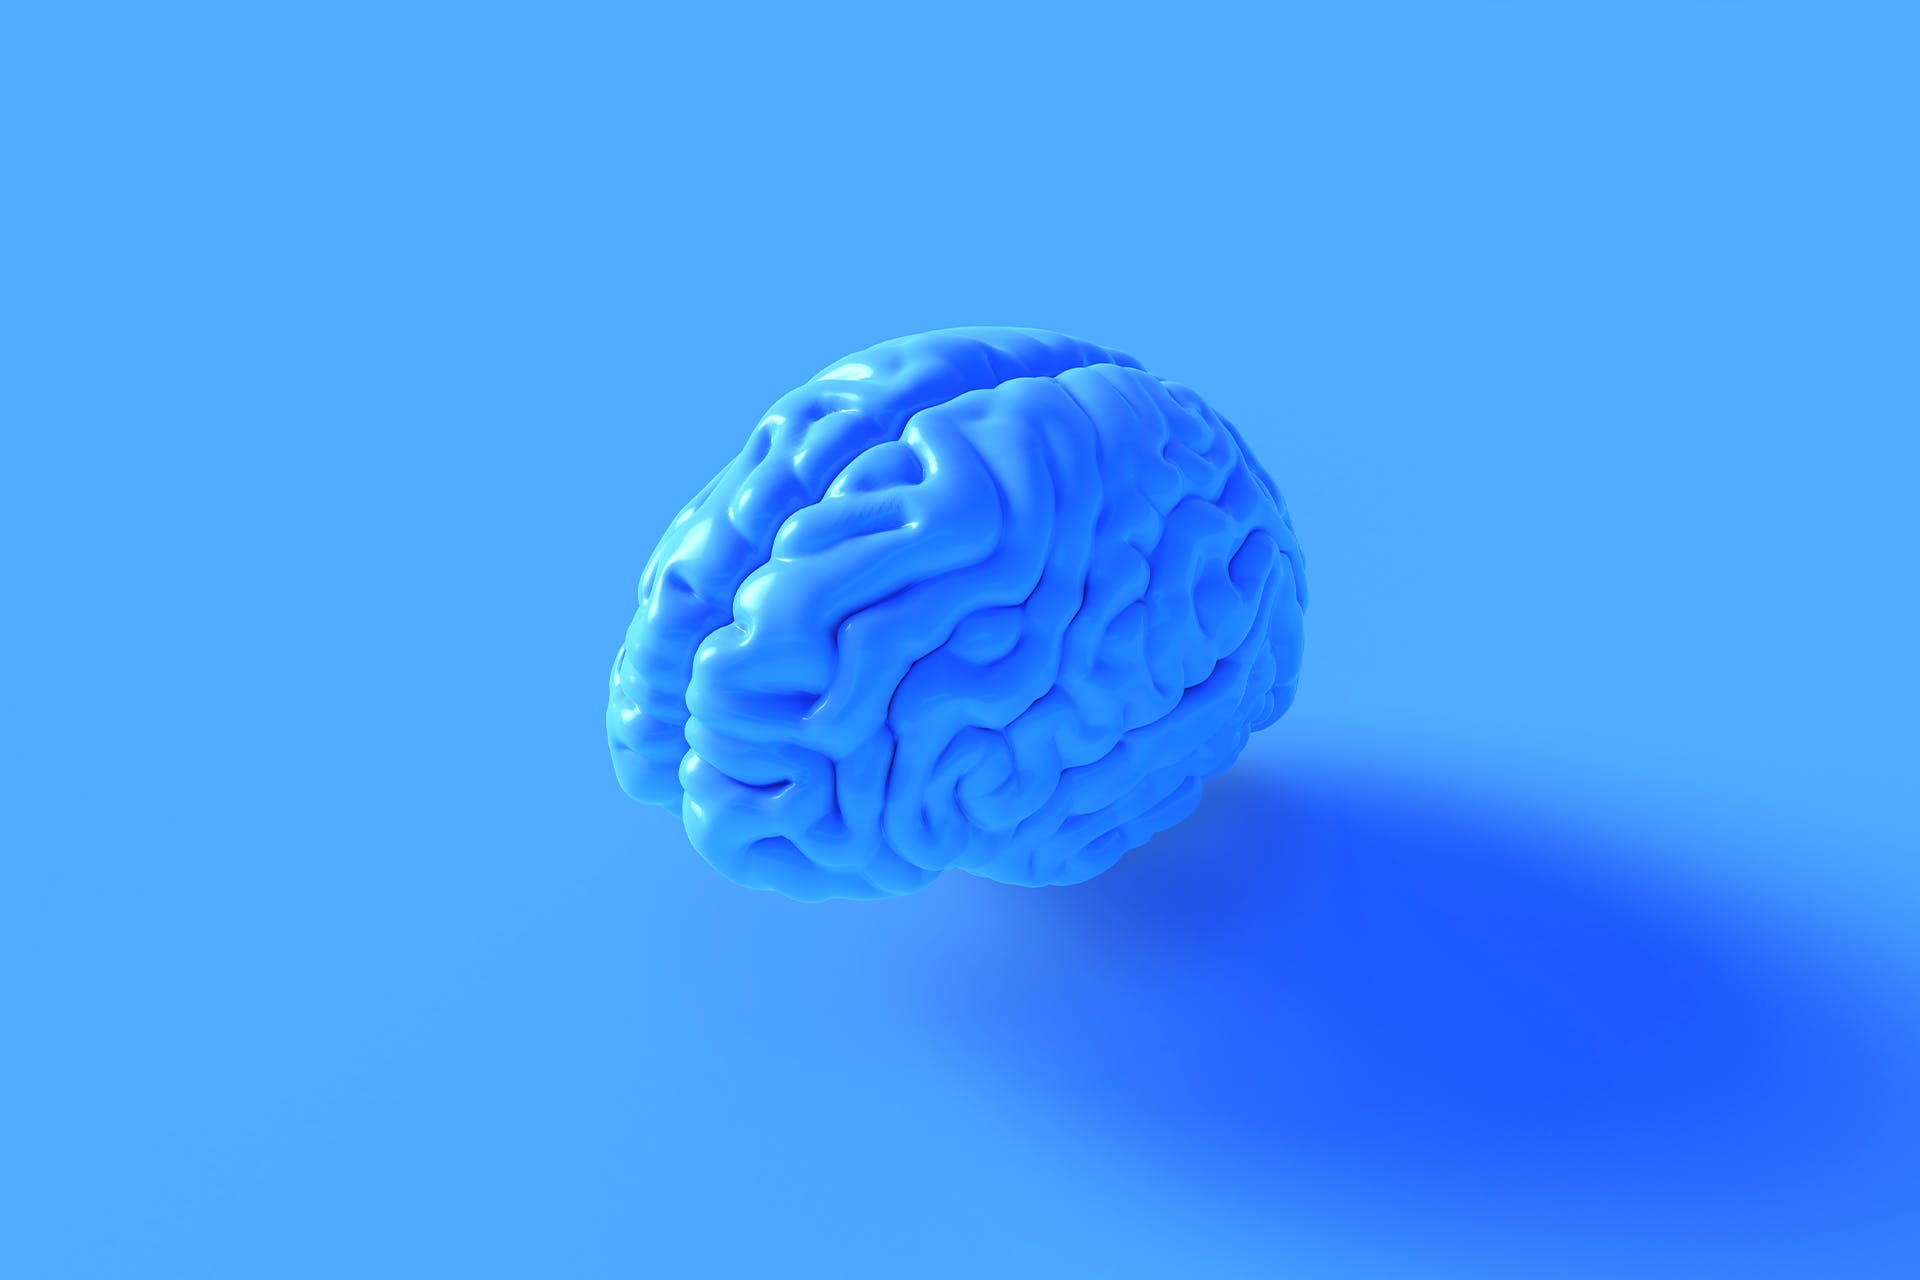 A model of the human brain that is blue set against a blue background. We think (get it) was the perfect choice for our blog on market intelligence.